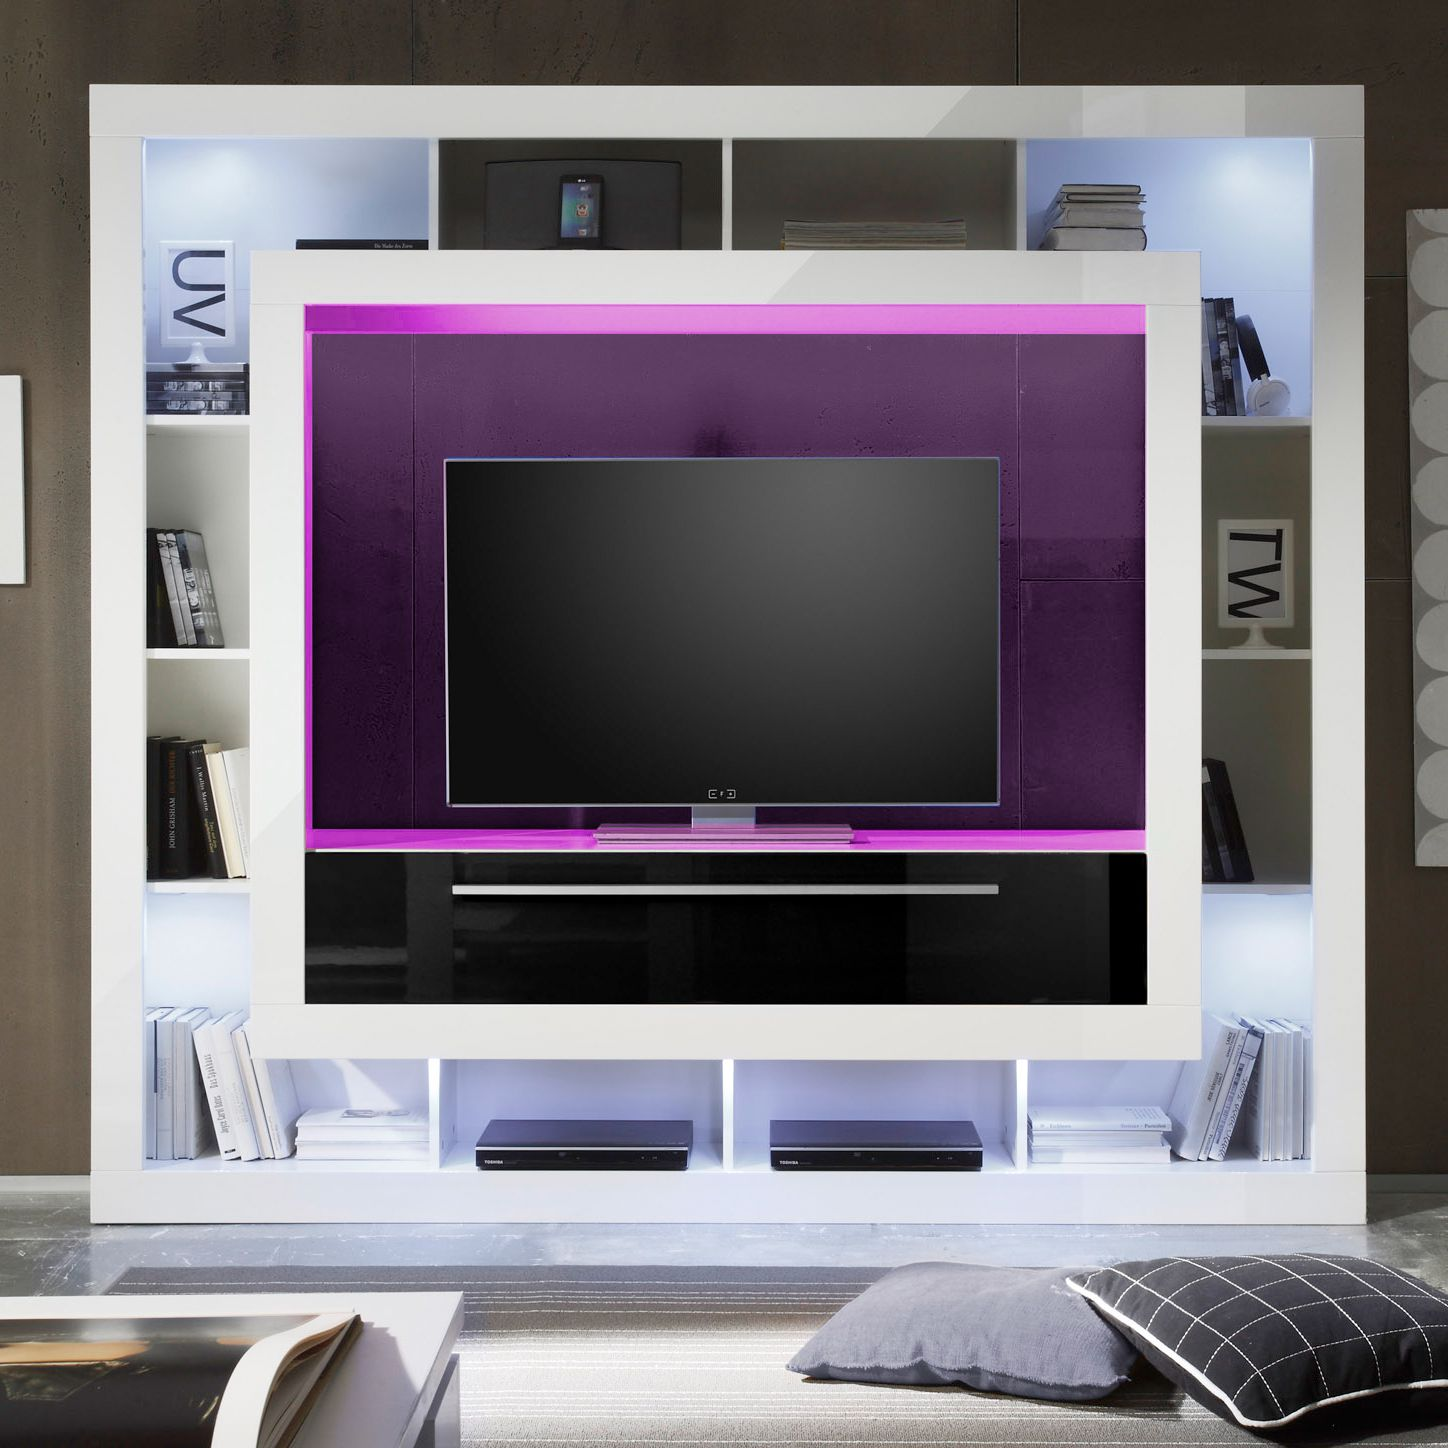 hochglanz weiss tv wand preisvergleiche erfahrungsberichte und kauf bei nextag. Black Bedroom Furniture Sets. Home Design Ideas